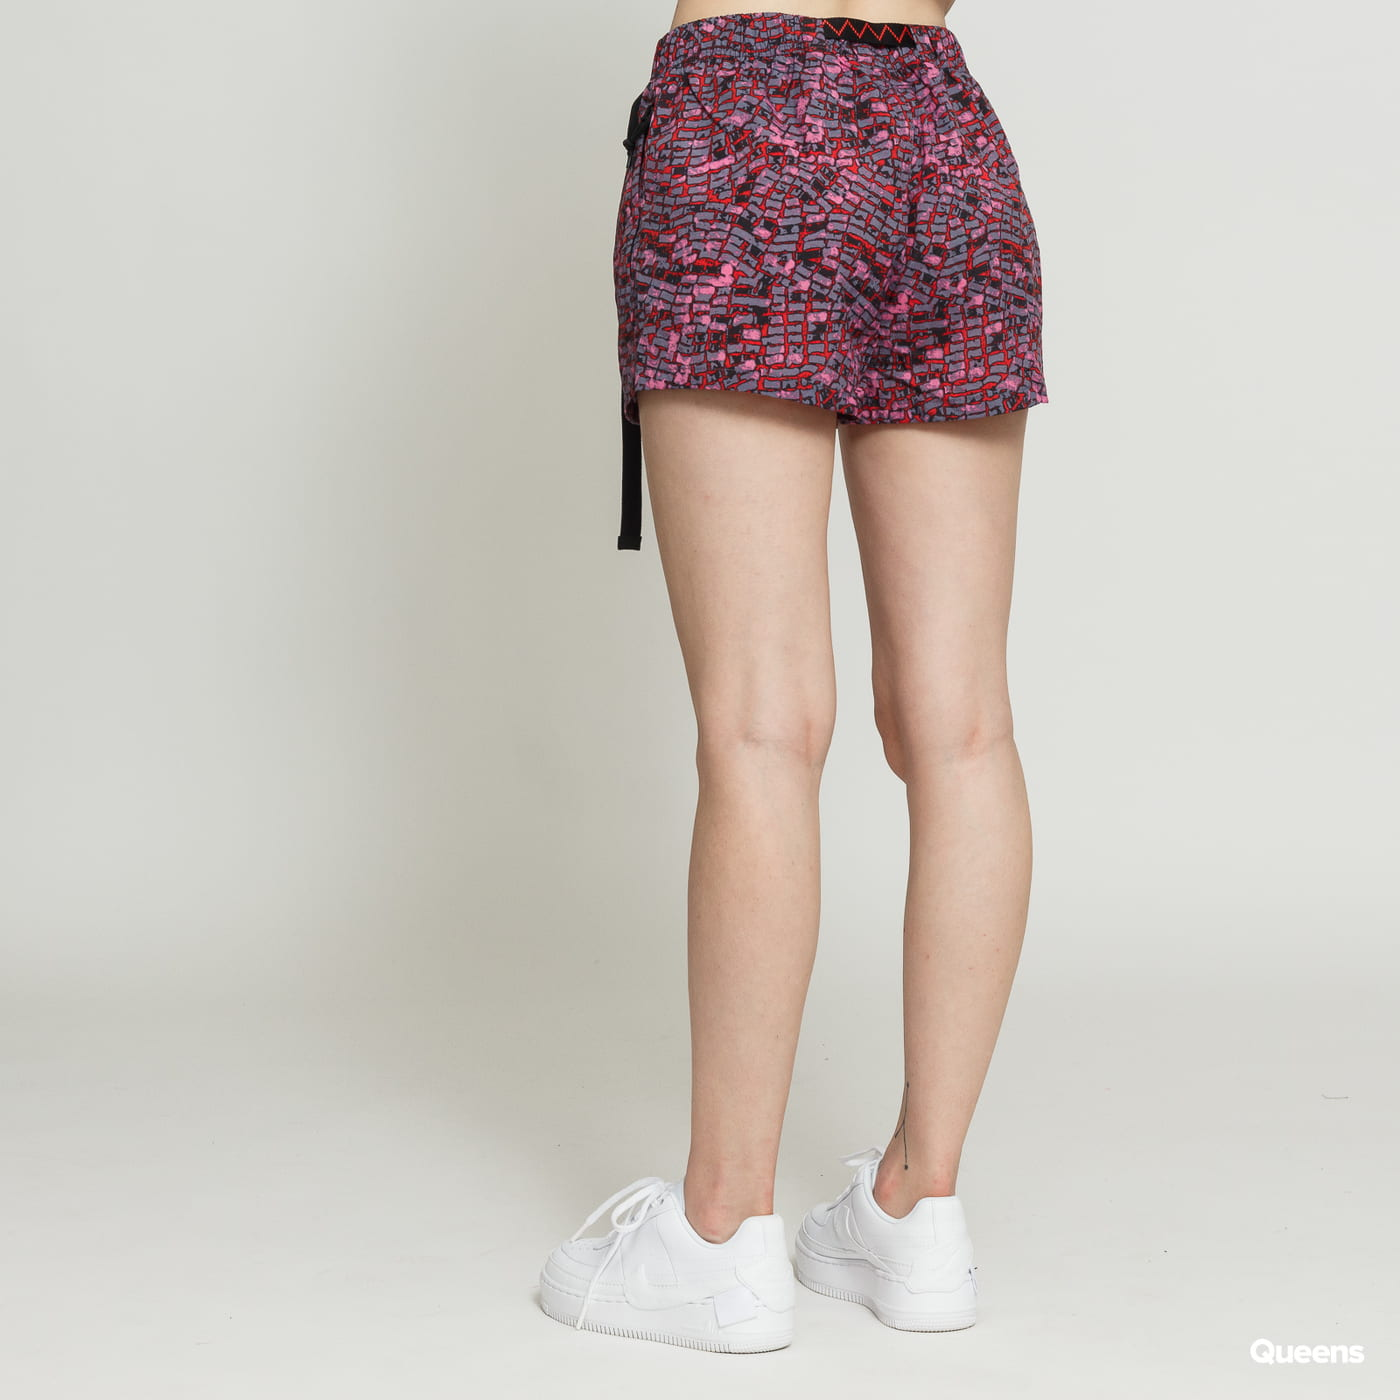 separation shoes bb8e0 9dccf Zoom in Zoom in Zoom in Zoom in Zoom in. Nike W NRG ACG Short 2 AOP ...